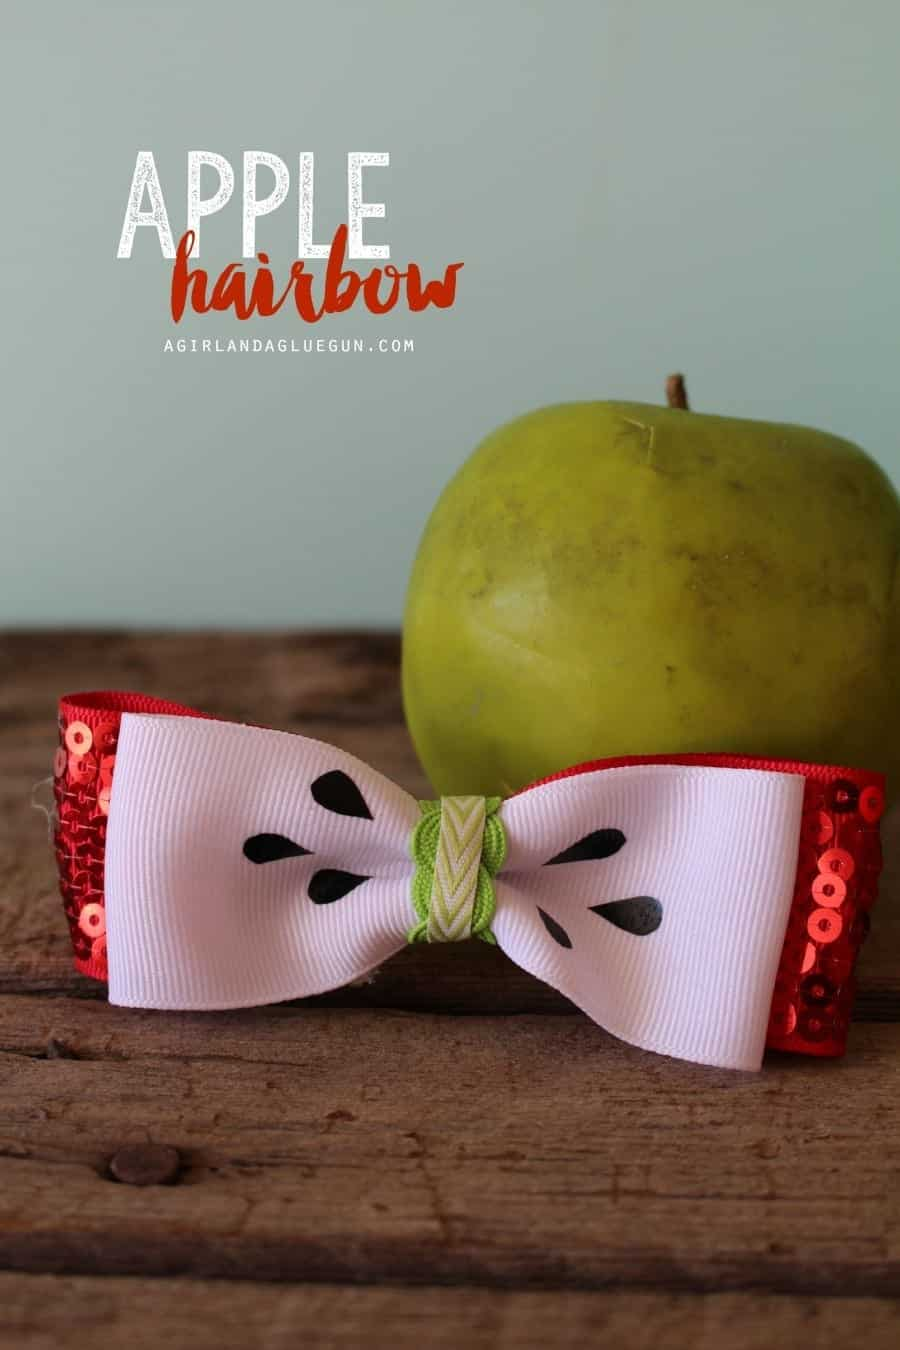 apple-hairbow-900x1350